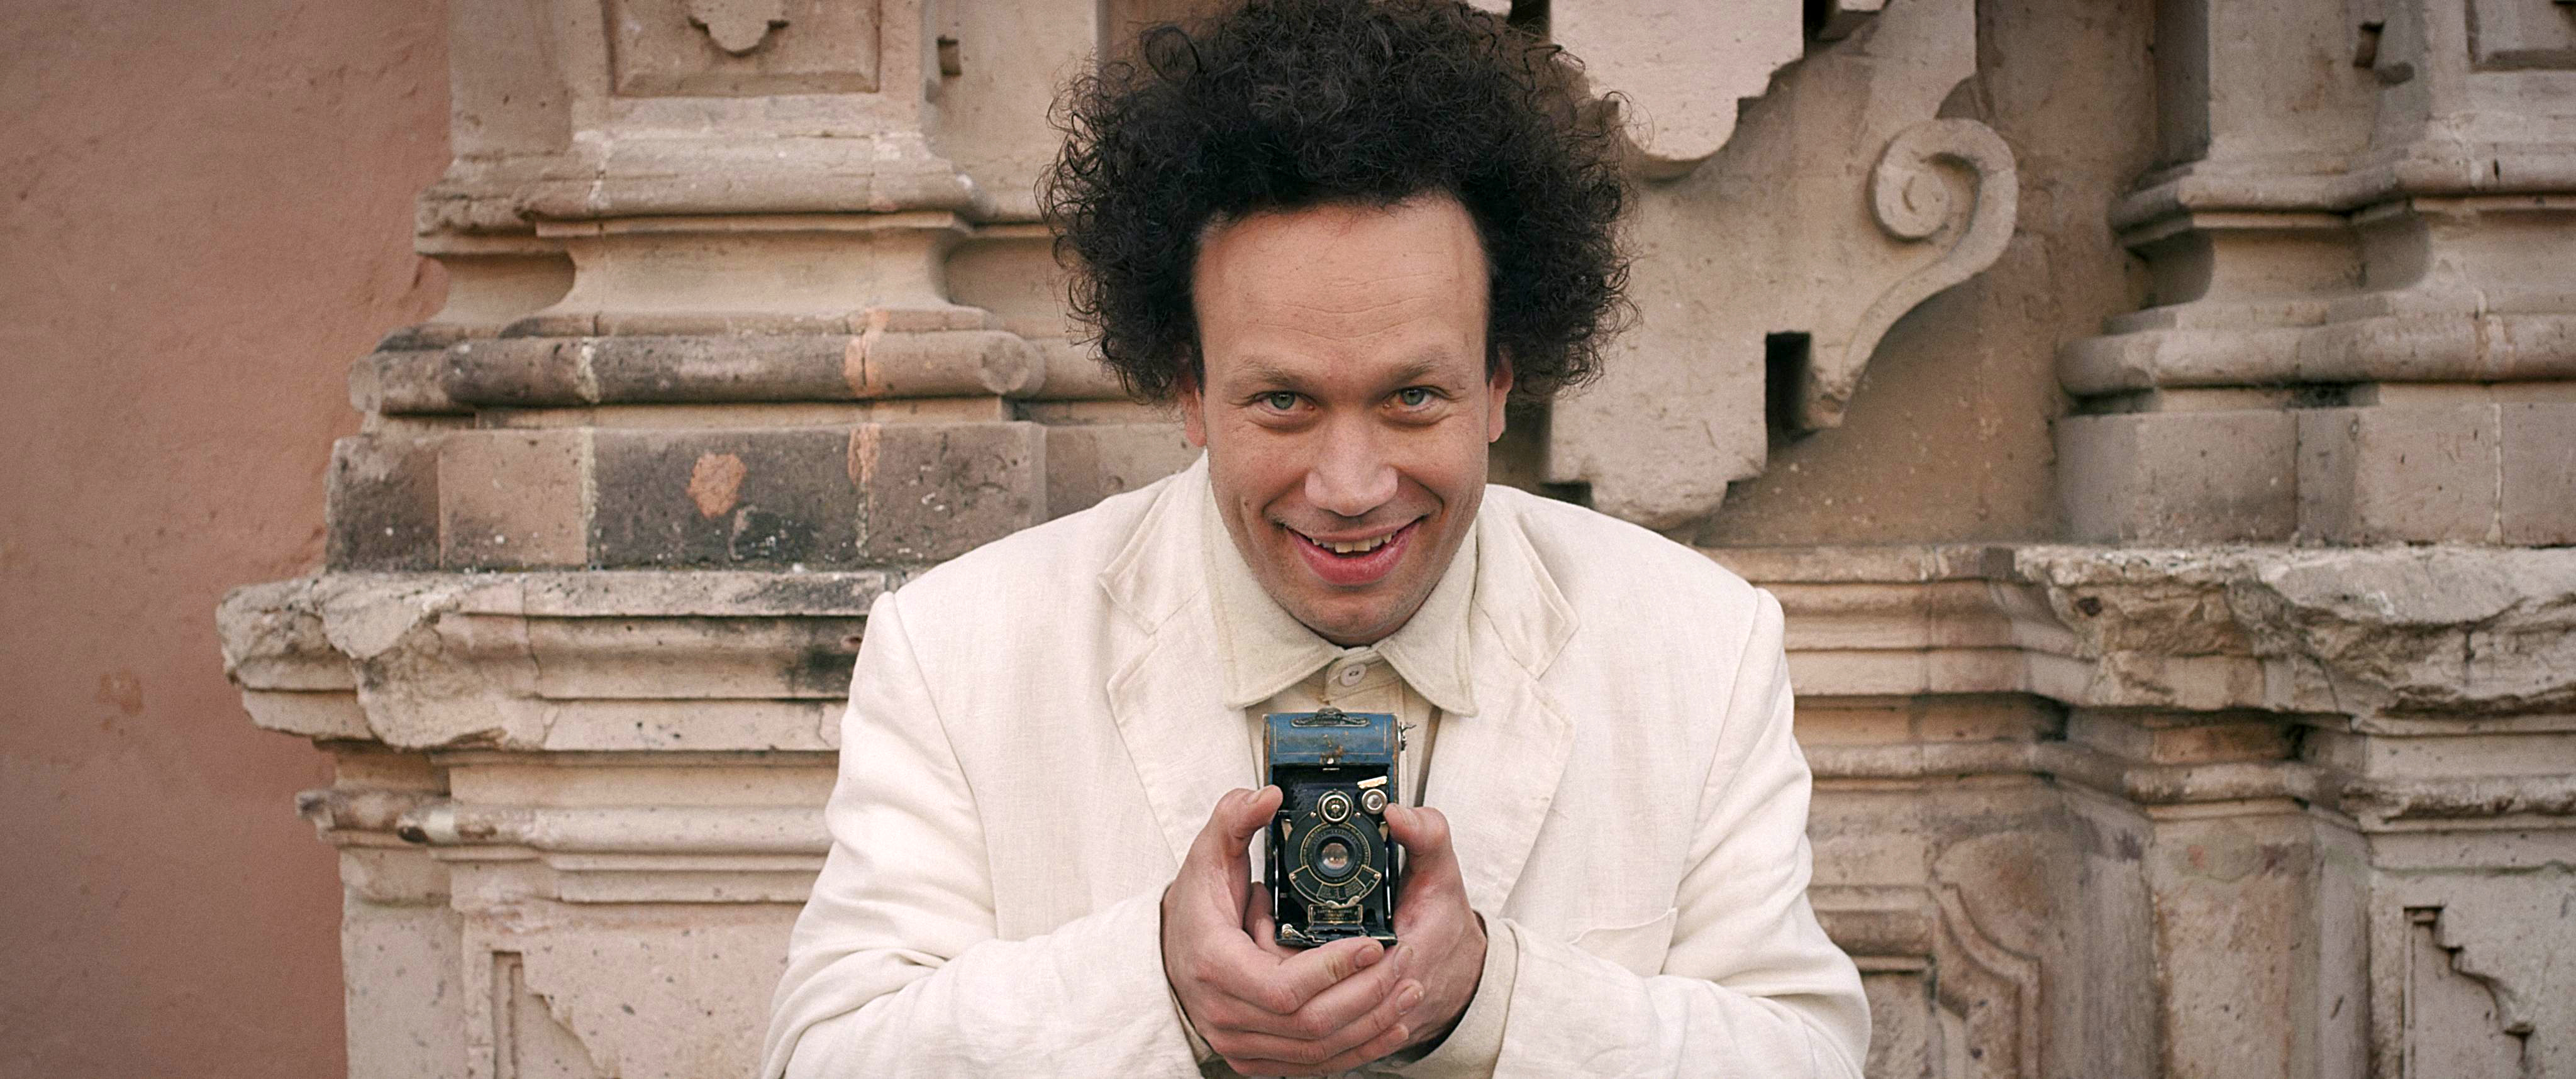 05_eisenstein_in_messico_by_peter_greenaway_produced_by_submarine_fu_works_and_paloma_negra-submarine_2015